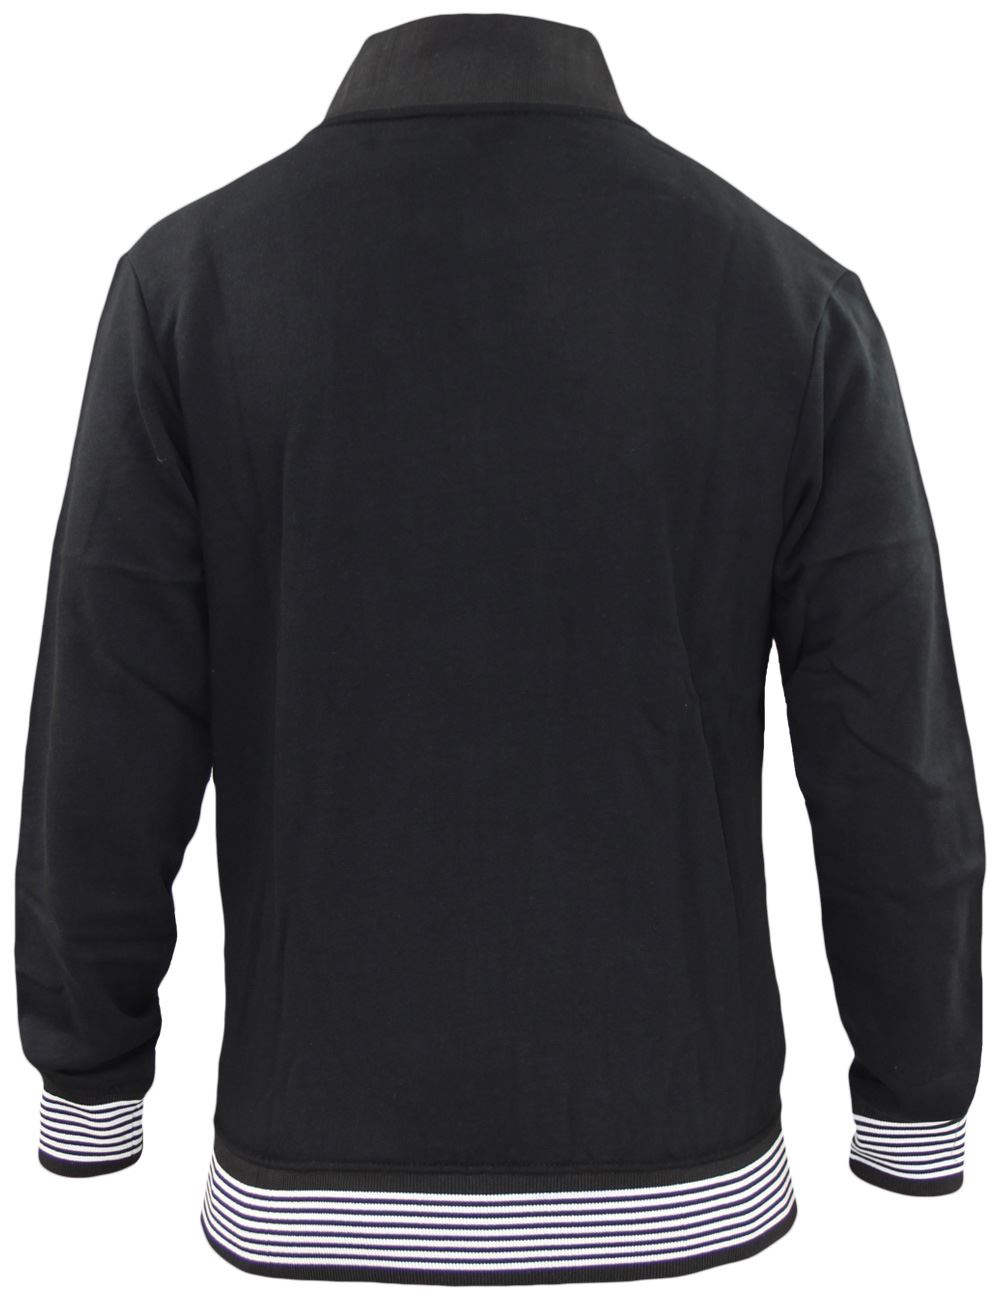 Mens-Jackets-Plain-Striped-Collar-Cuff-Zip-Sweatshirts-Ribbed-Sports-Sweater-Top thumbnail 3